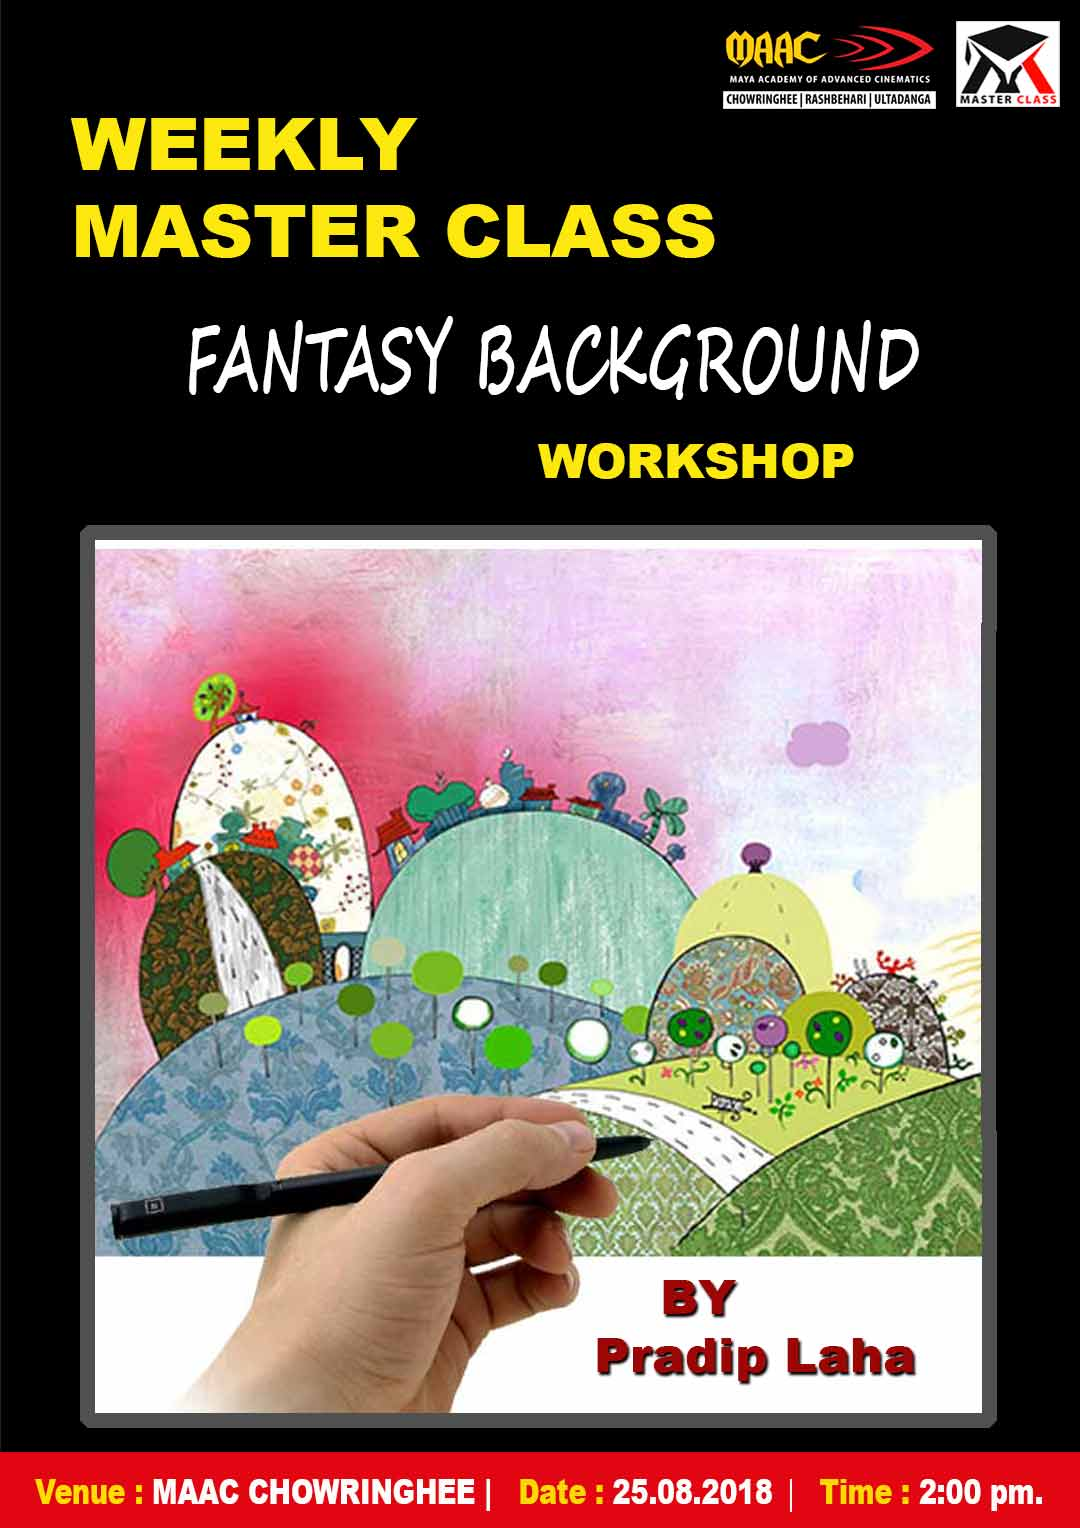 Weekly Master Class on Fantasy Background Workshop